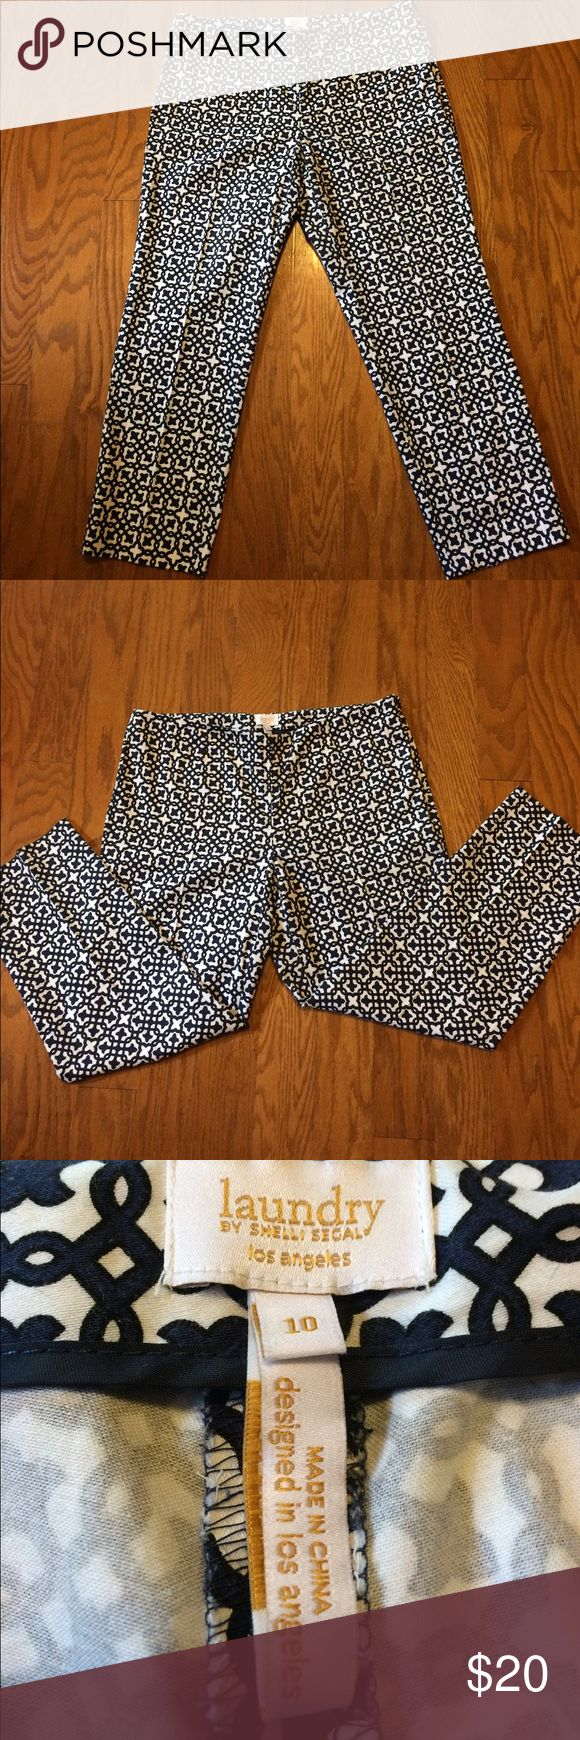 Ankle pants Laundry by Shelli Segal Cute & comfy ankle pants. Laundry by Shelli Segal. Navy & white in fun pattern. Laundry by Shelli Segal Pants Ankle & Cropped